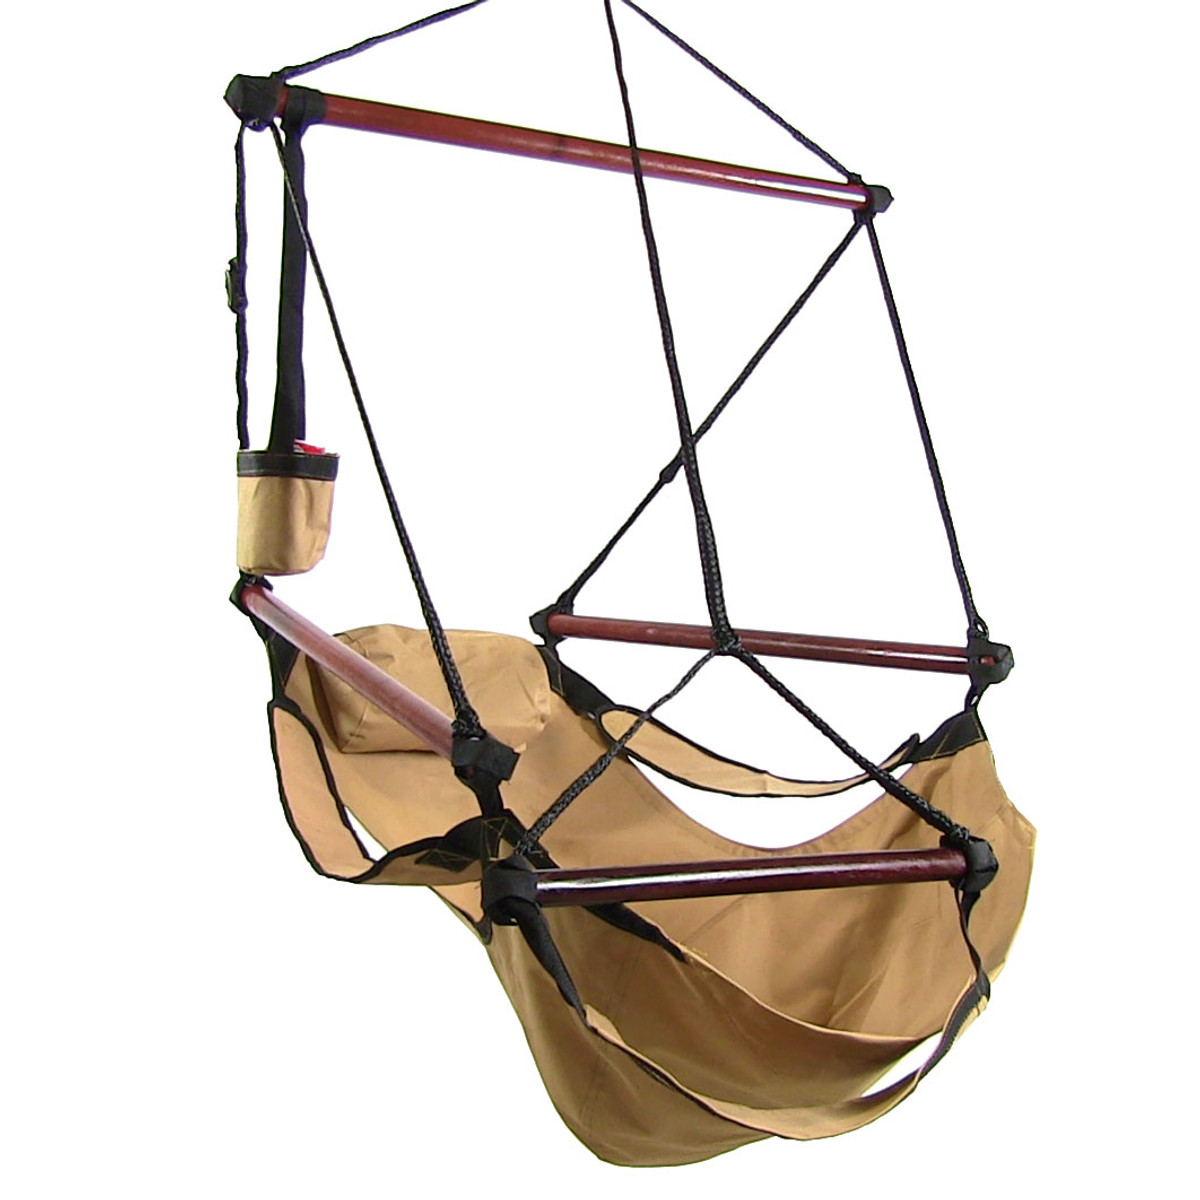 hanging chair no stand steel gif sunnydaze hammock with pillow drink holder